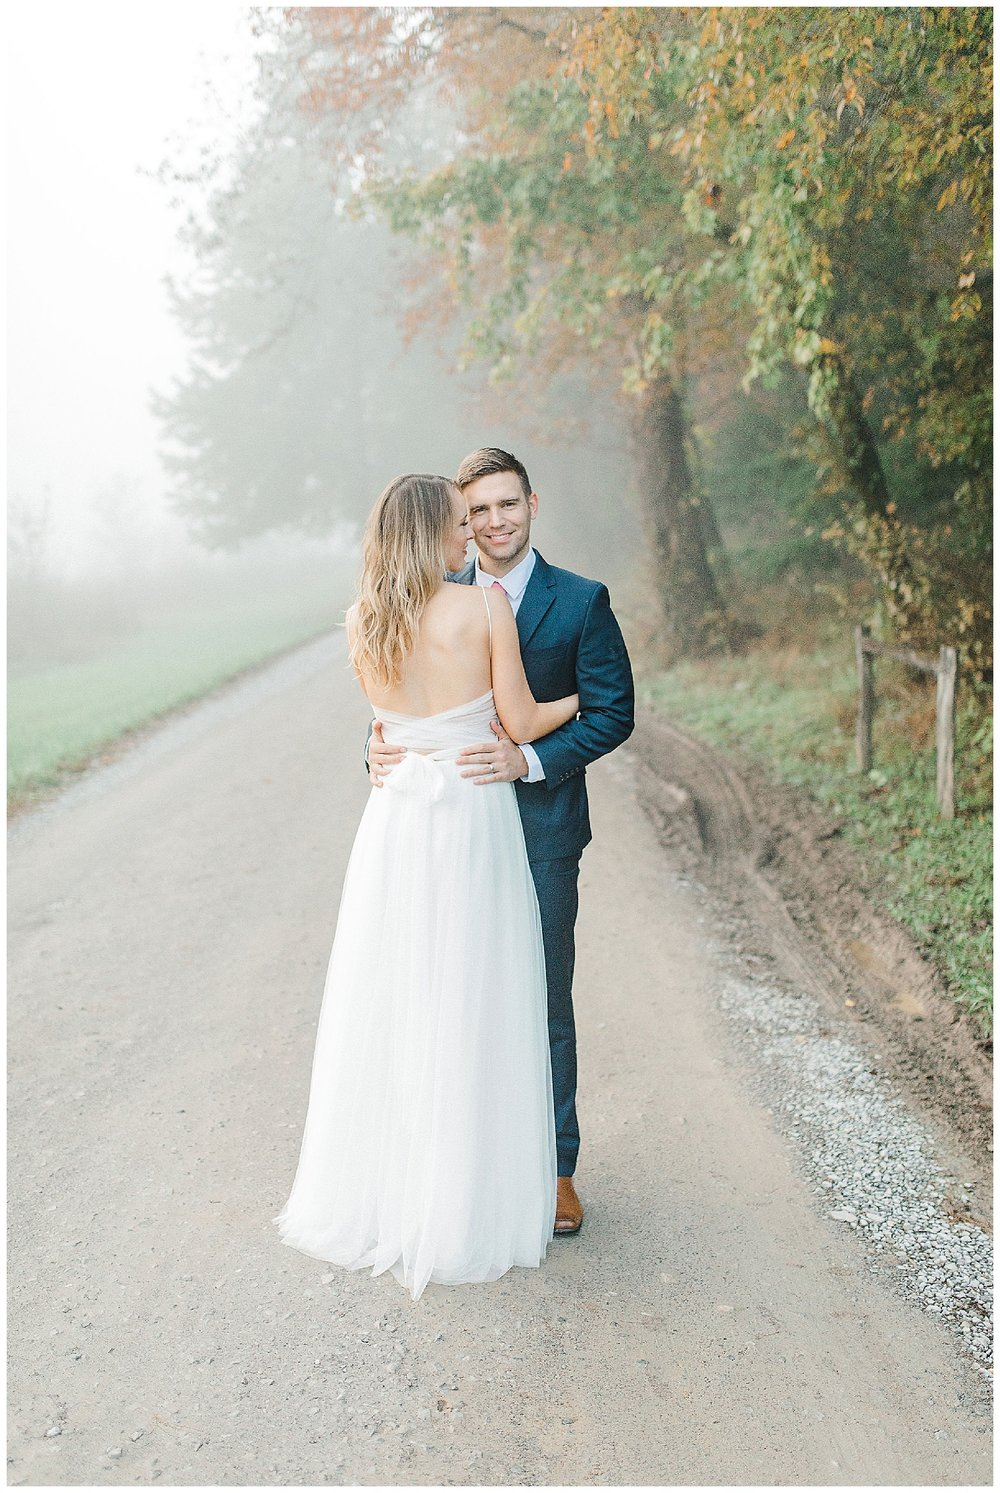 Emma Rose Company recently got to travel all the way to Nashville to photograph the most beautiful post-wedding bride and groom portraits in the Great Smoky Mountains with a gorgeous couple! Nashville wedding inspiration at it's finest._0016.jpg